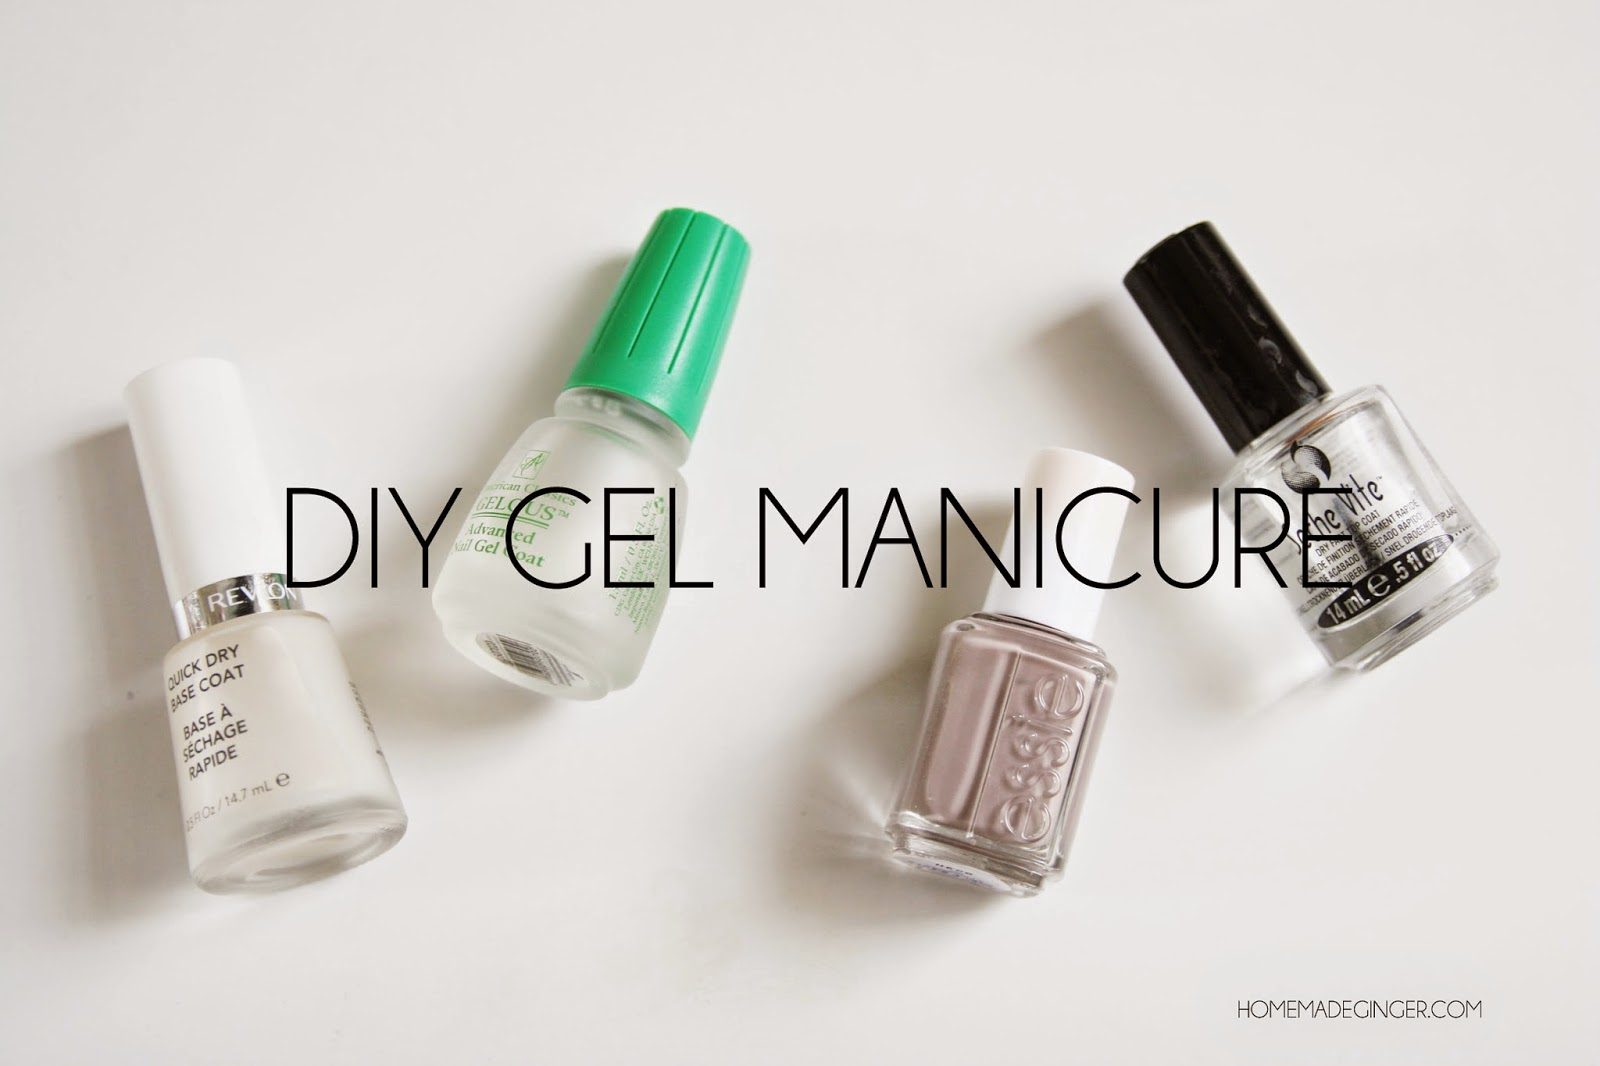 diy gel manicure that lasts about 5 days for me